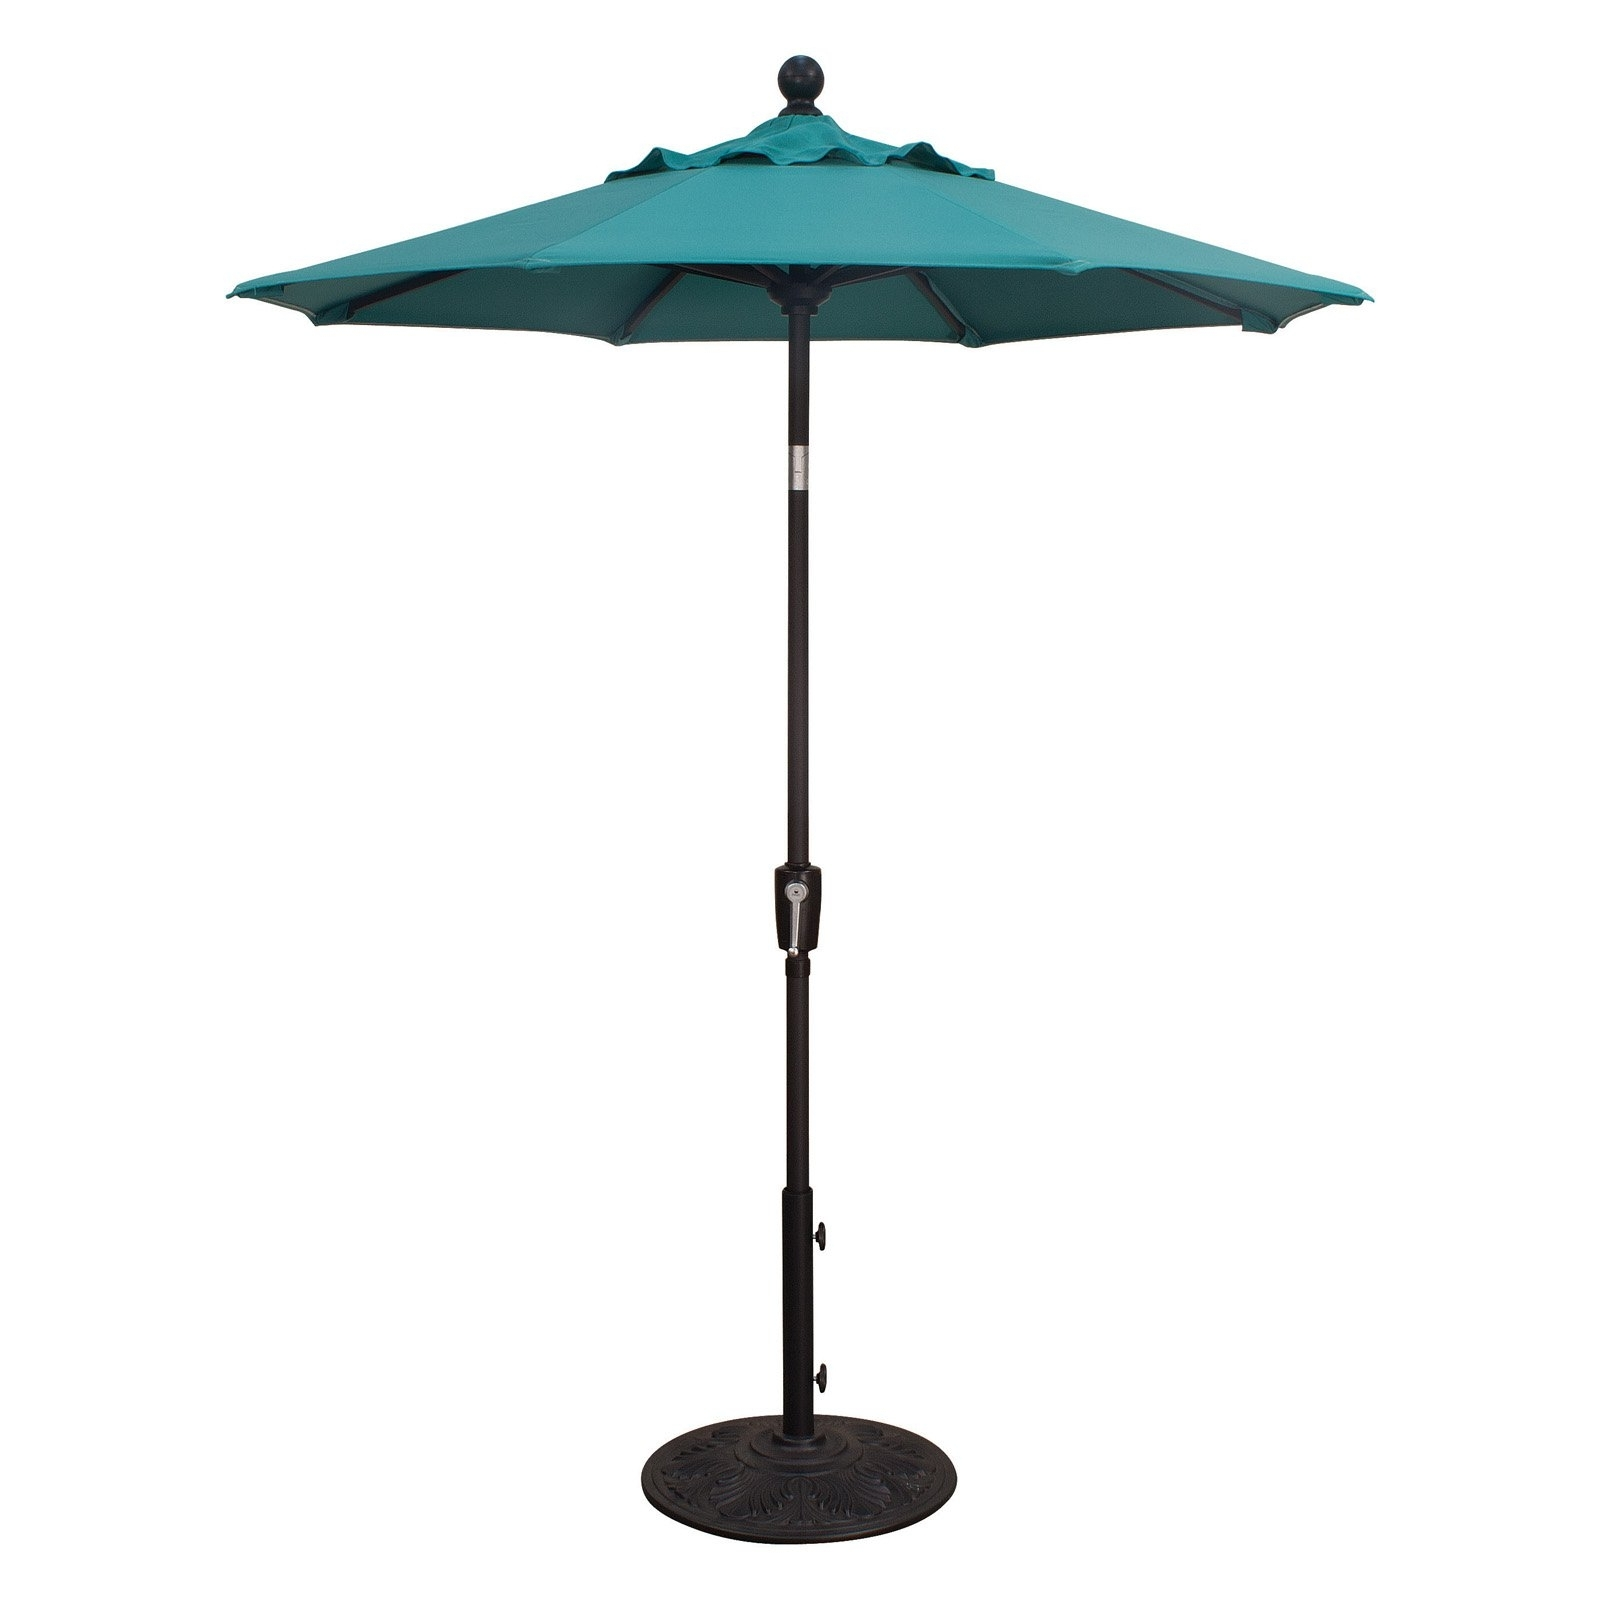 6 Foot Patio Umbrellas • Patio Ideas For Most Up To Date 6 Ft Patio Umbrellas (Gallery 1 of 20)